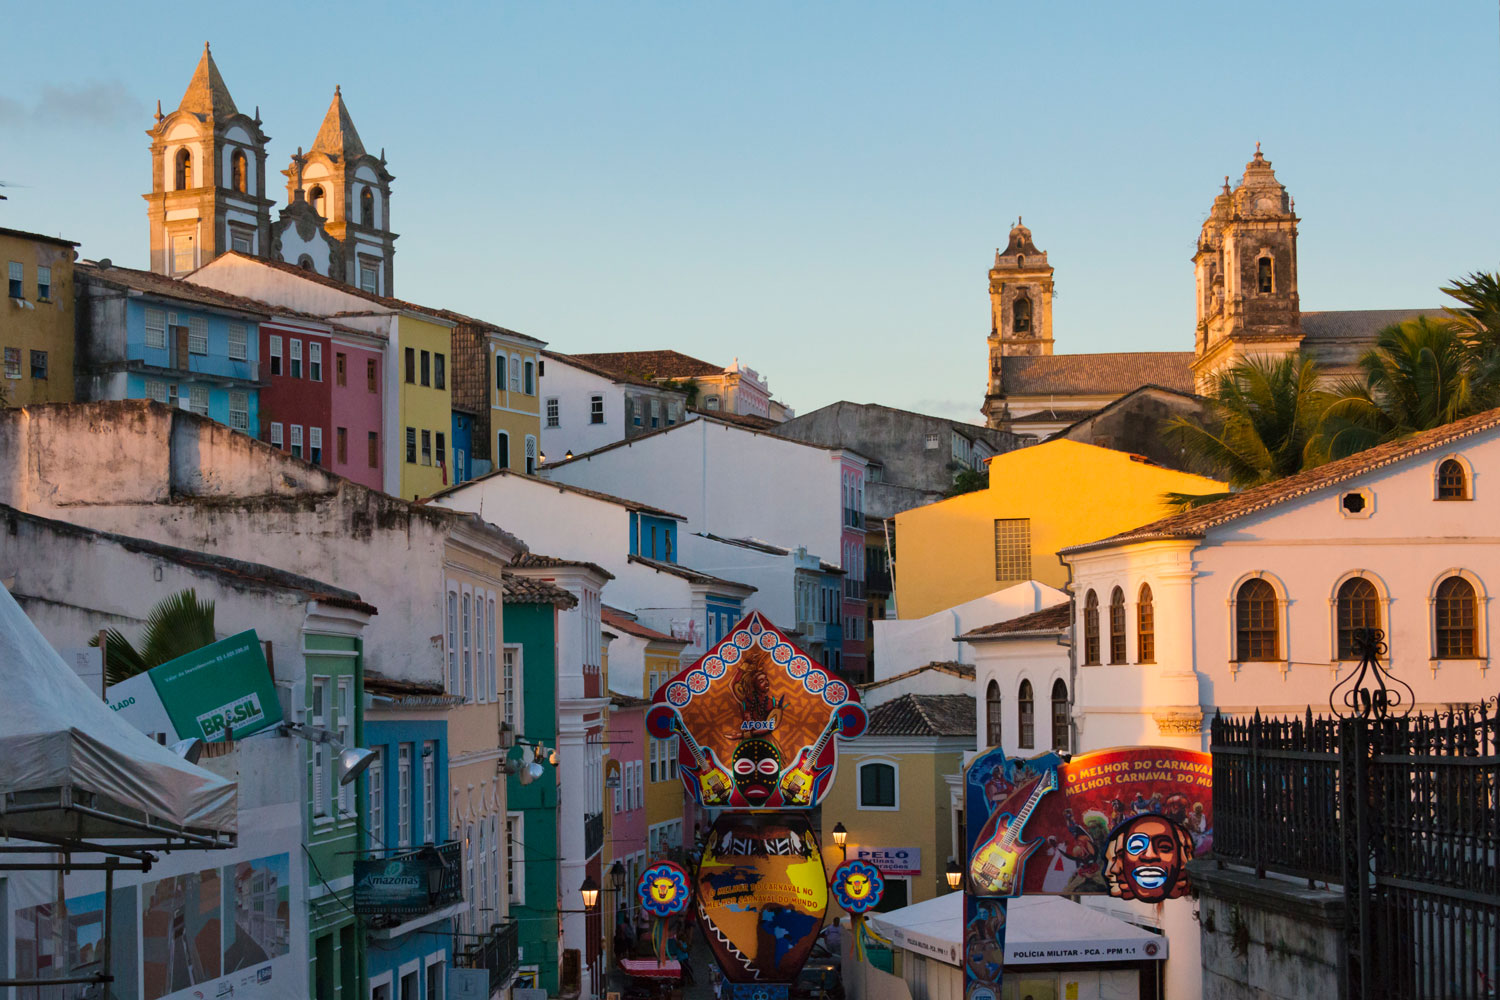 Bahia was once Brazil's capital but is now known more for its vibrant African-influenced music scene, 31 miles of beaches, and local street carnival that garners some 2 million visitors.